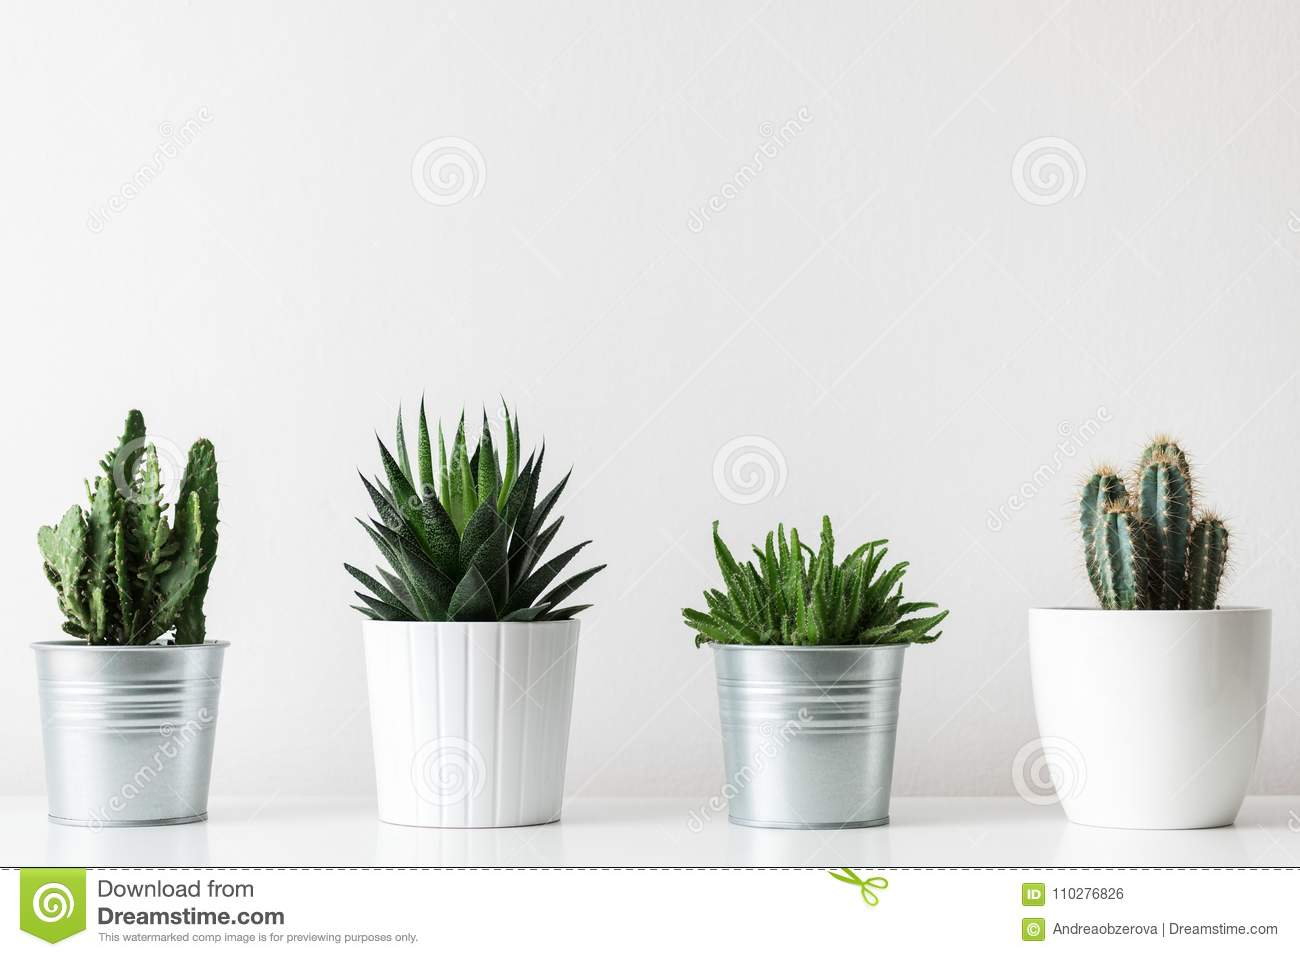 Collection of various cactus and succulent plants in different pots. Potted cactus house plants on white shelf.